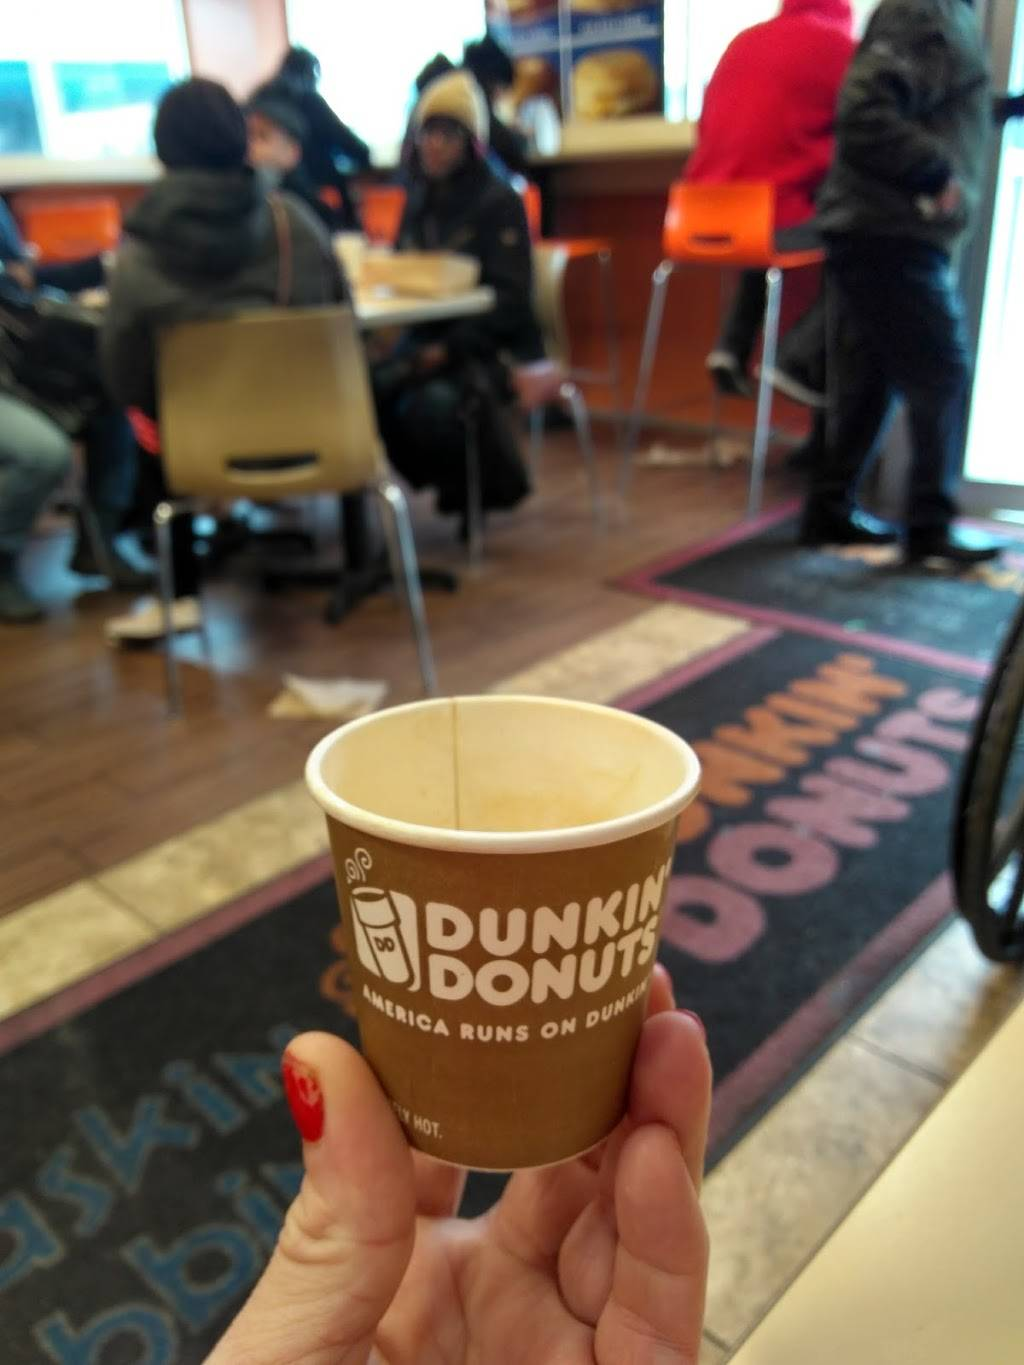 Dunkin Donuts | cafe | 13 Graham Ave, Brooklyn, NY 11206, USA | 7183886845 OR +1 718-388-6845